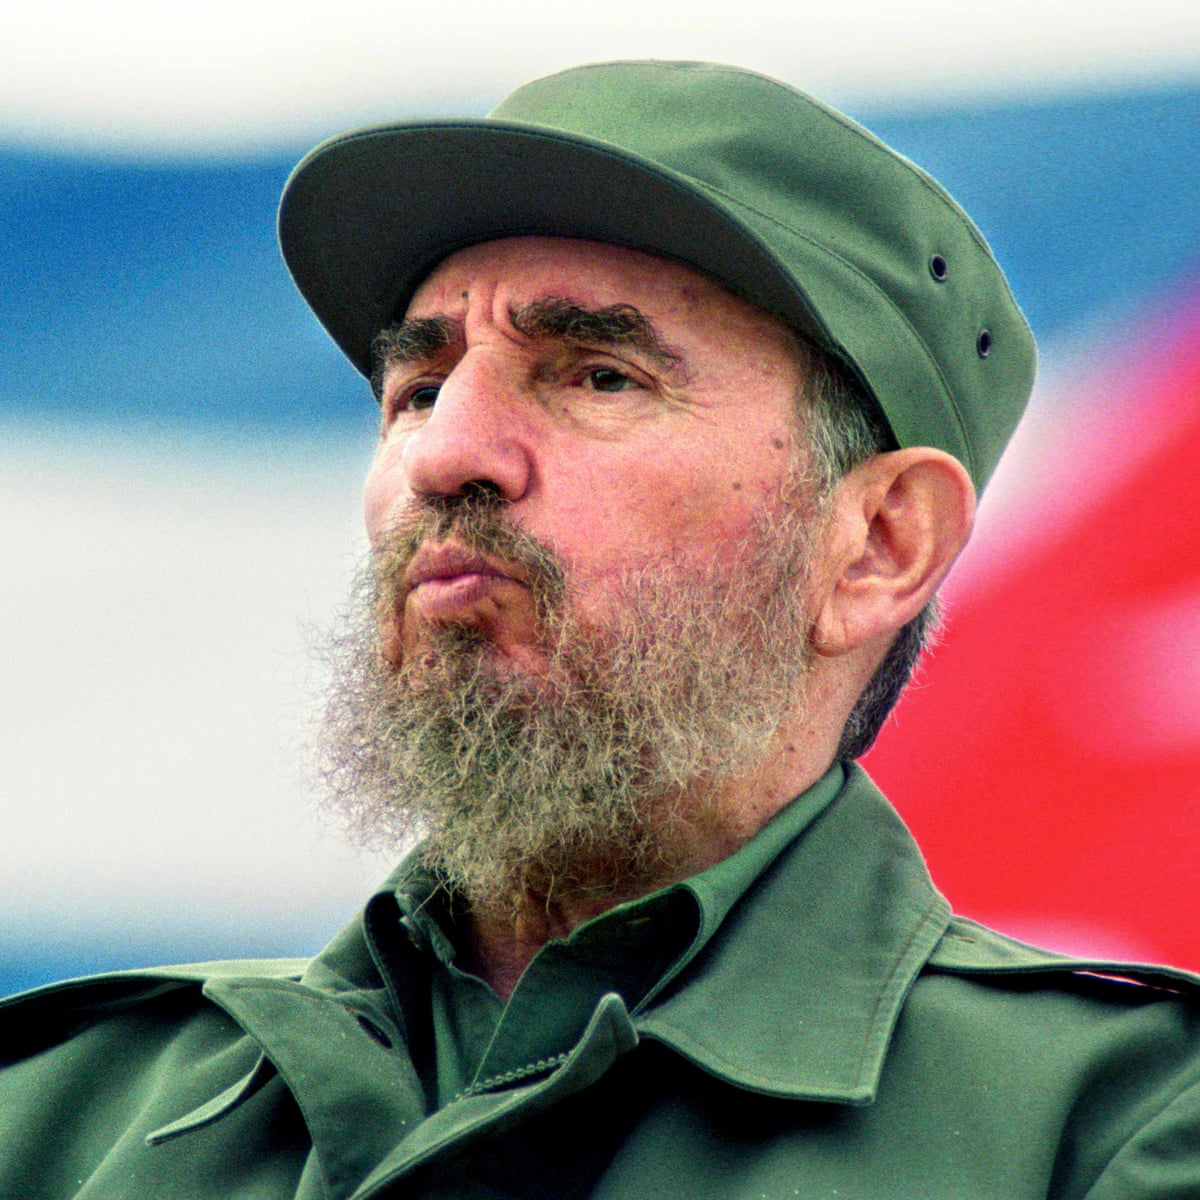 Fidel Castro S Shrinking Guest List And Other Controversial Funerals Fidel Castro The Guardian